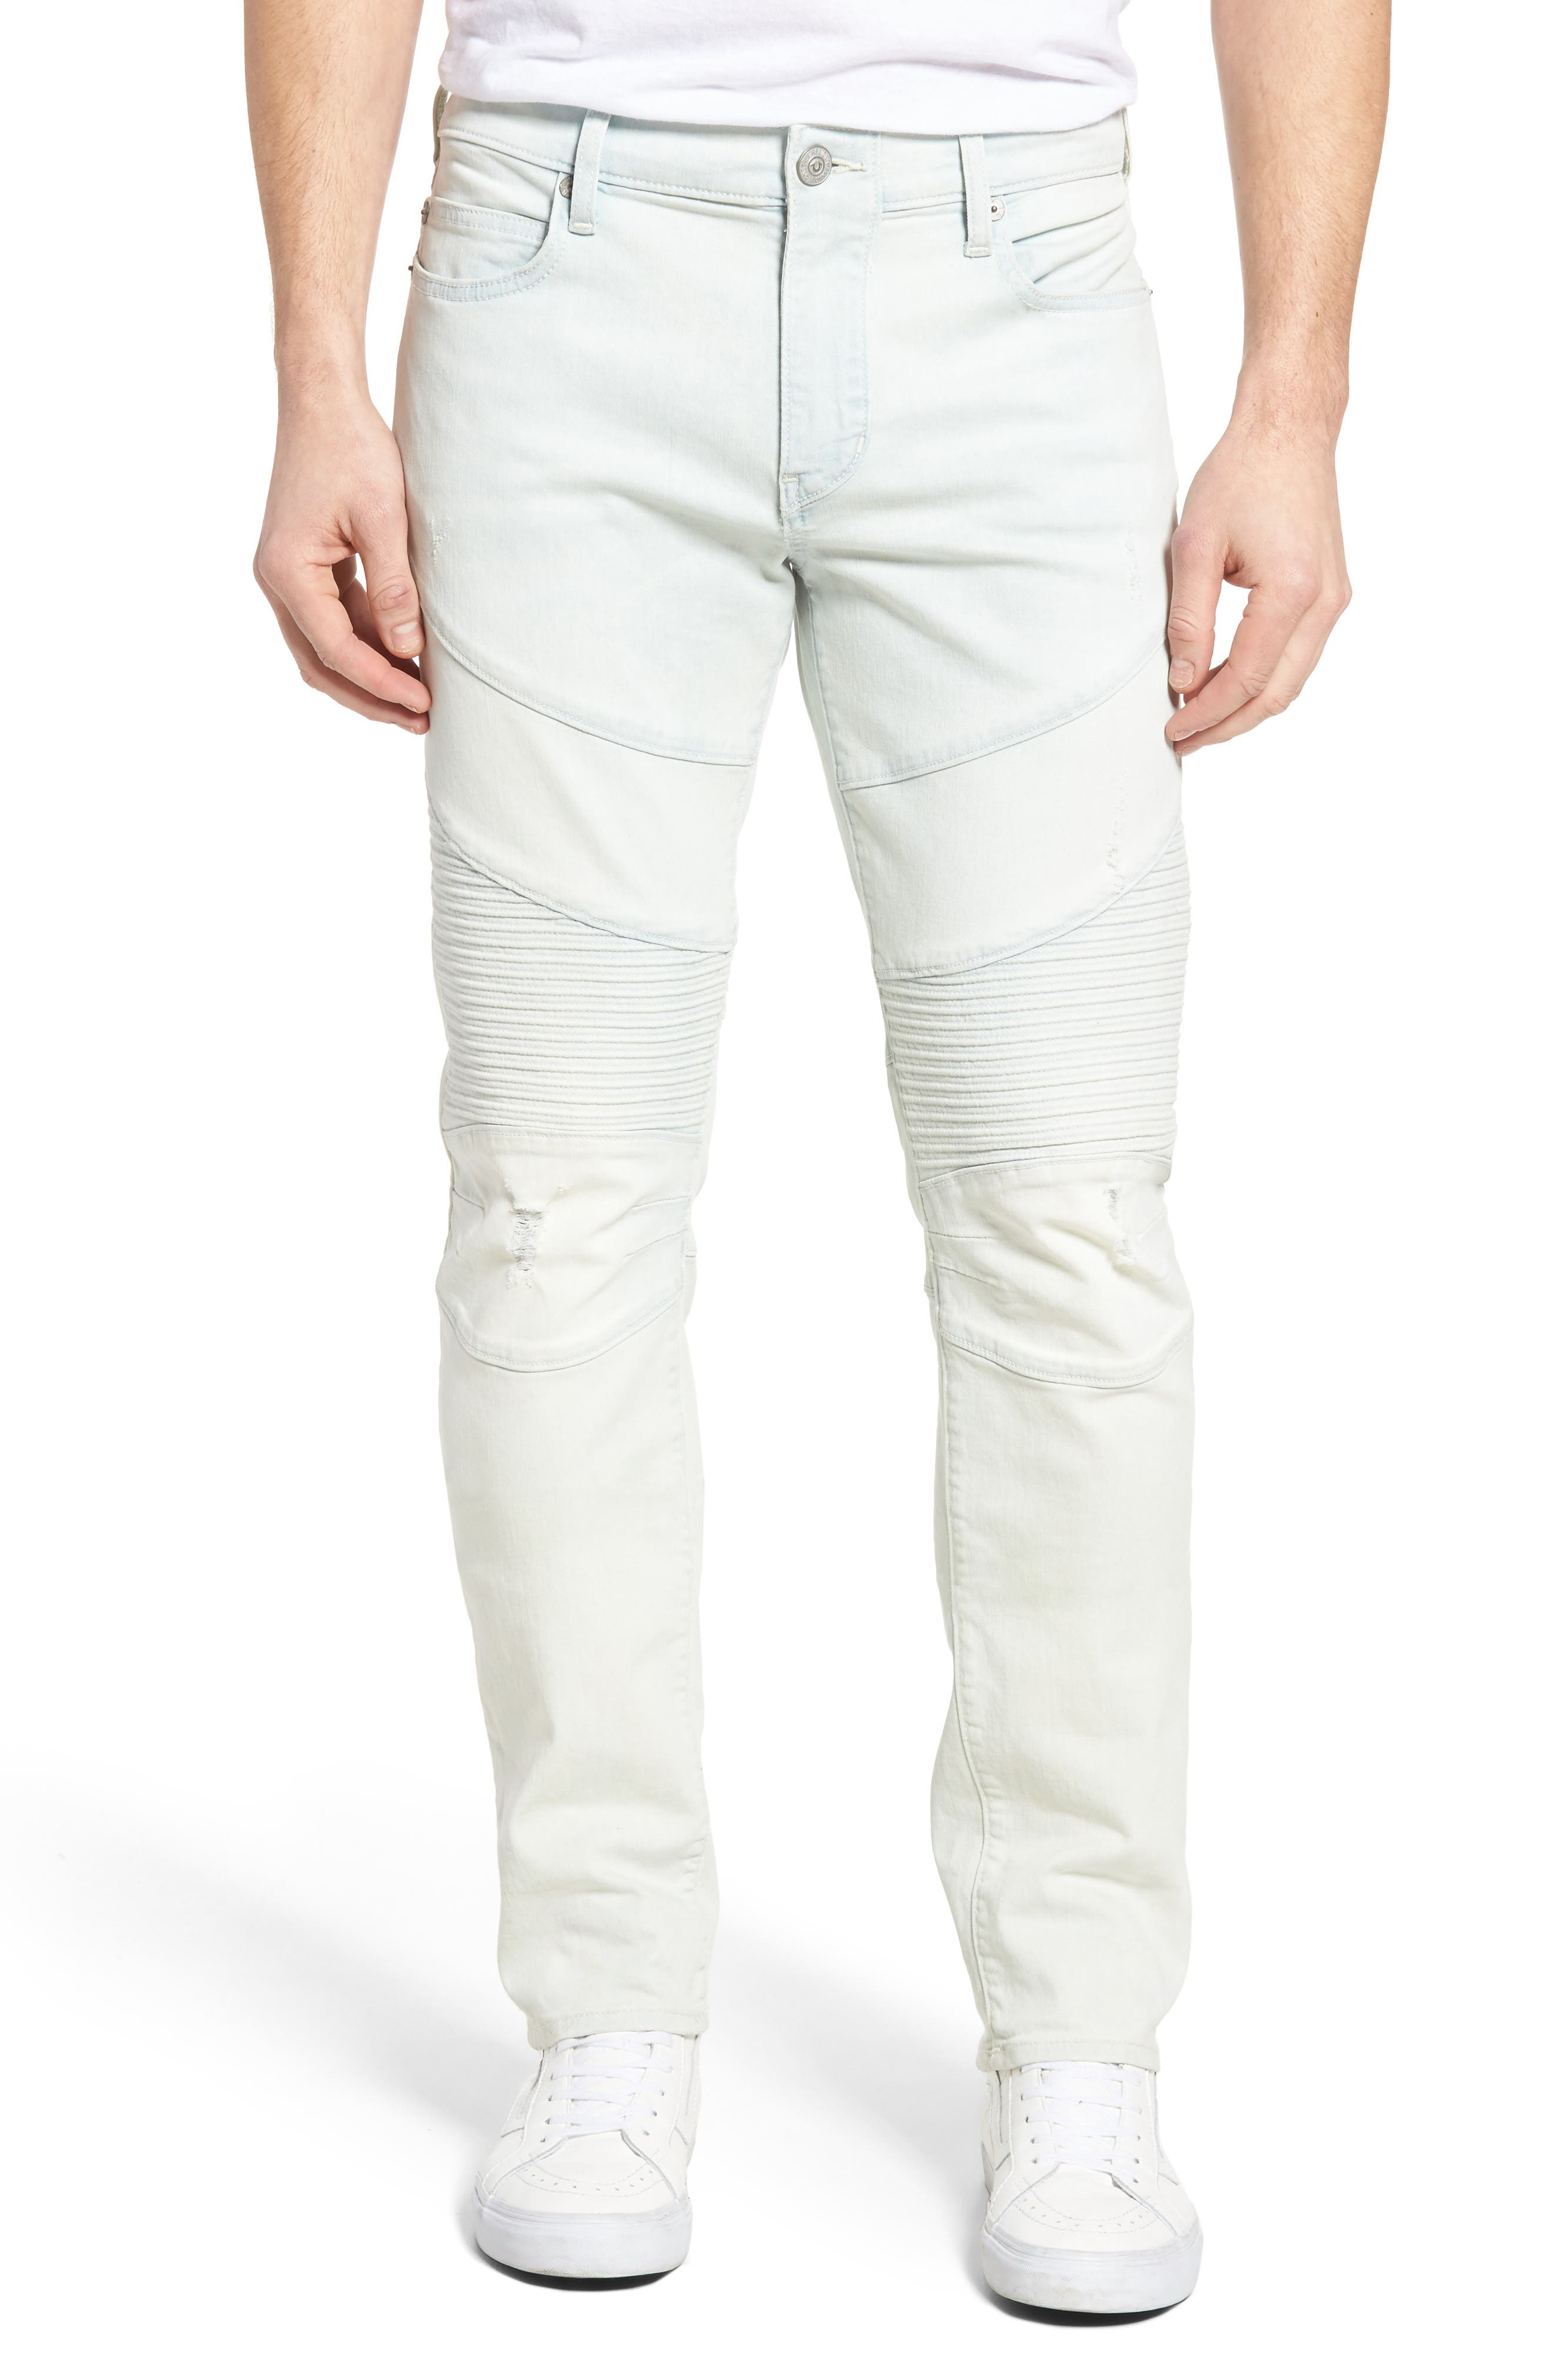 Main Image - True Religion Brand Jeans Rocco Skinny Fit Moto Jeans (Light Daze)